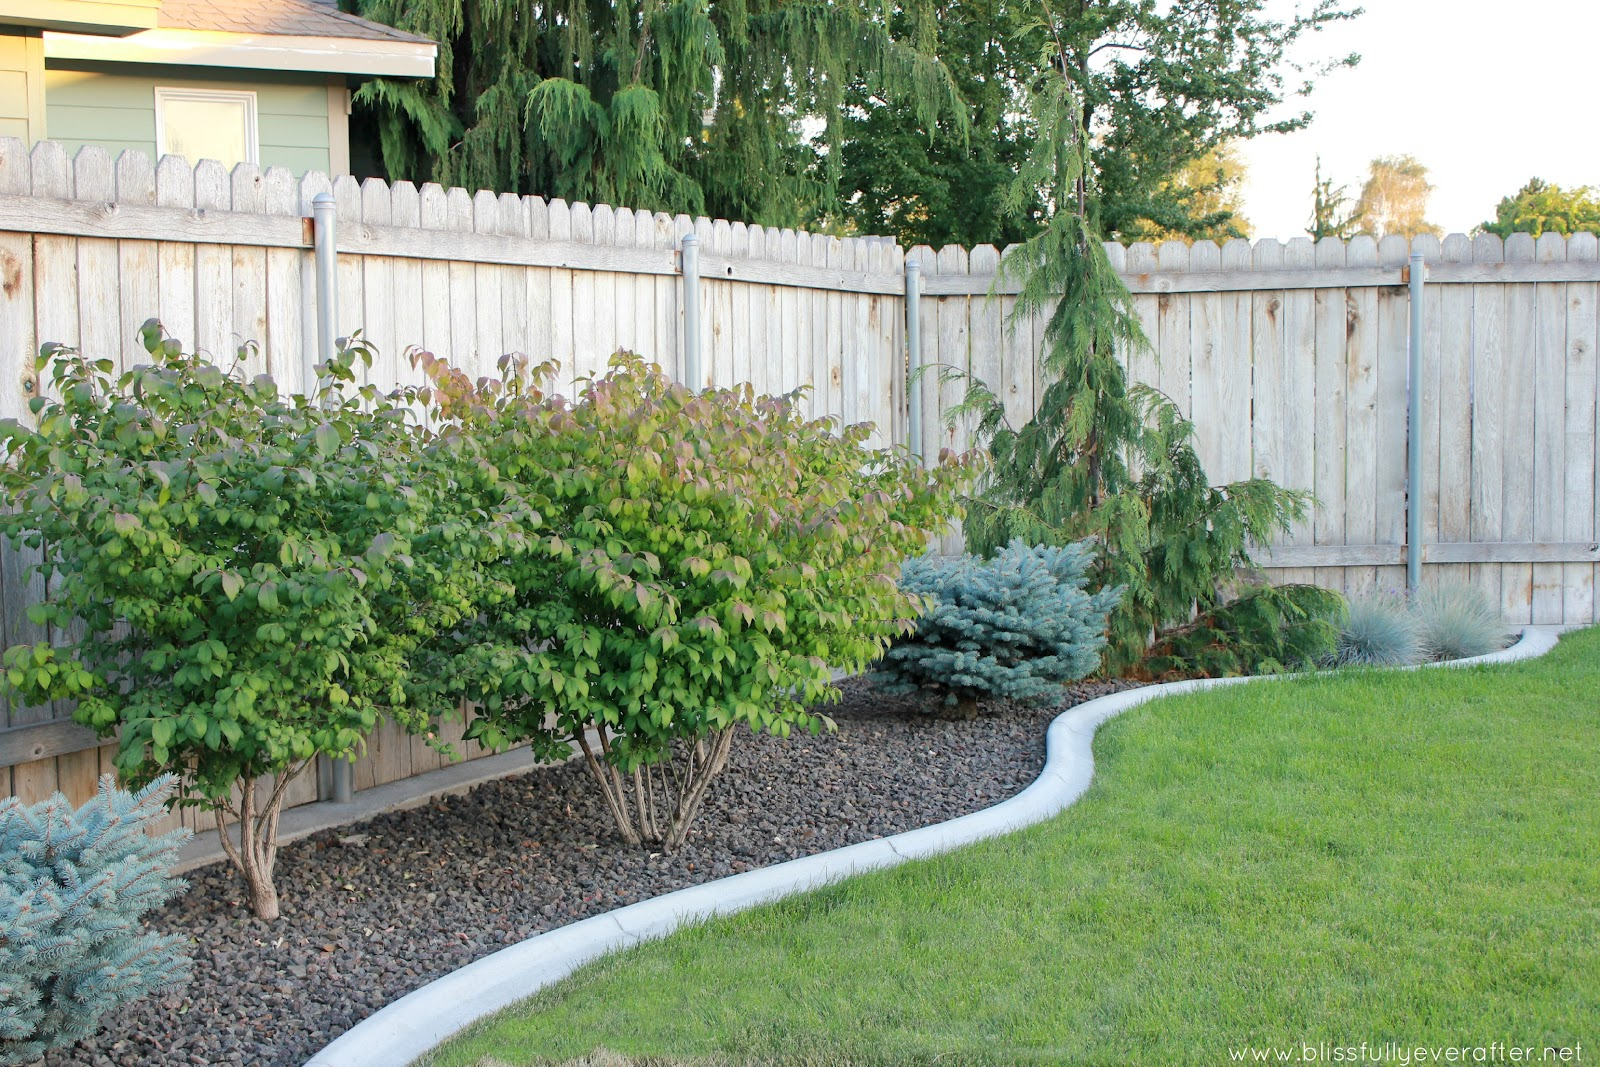 Yes landscaping custom front yard landscaping ideas for for Yard decorating ideas on a budget